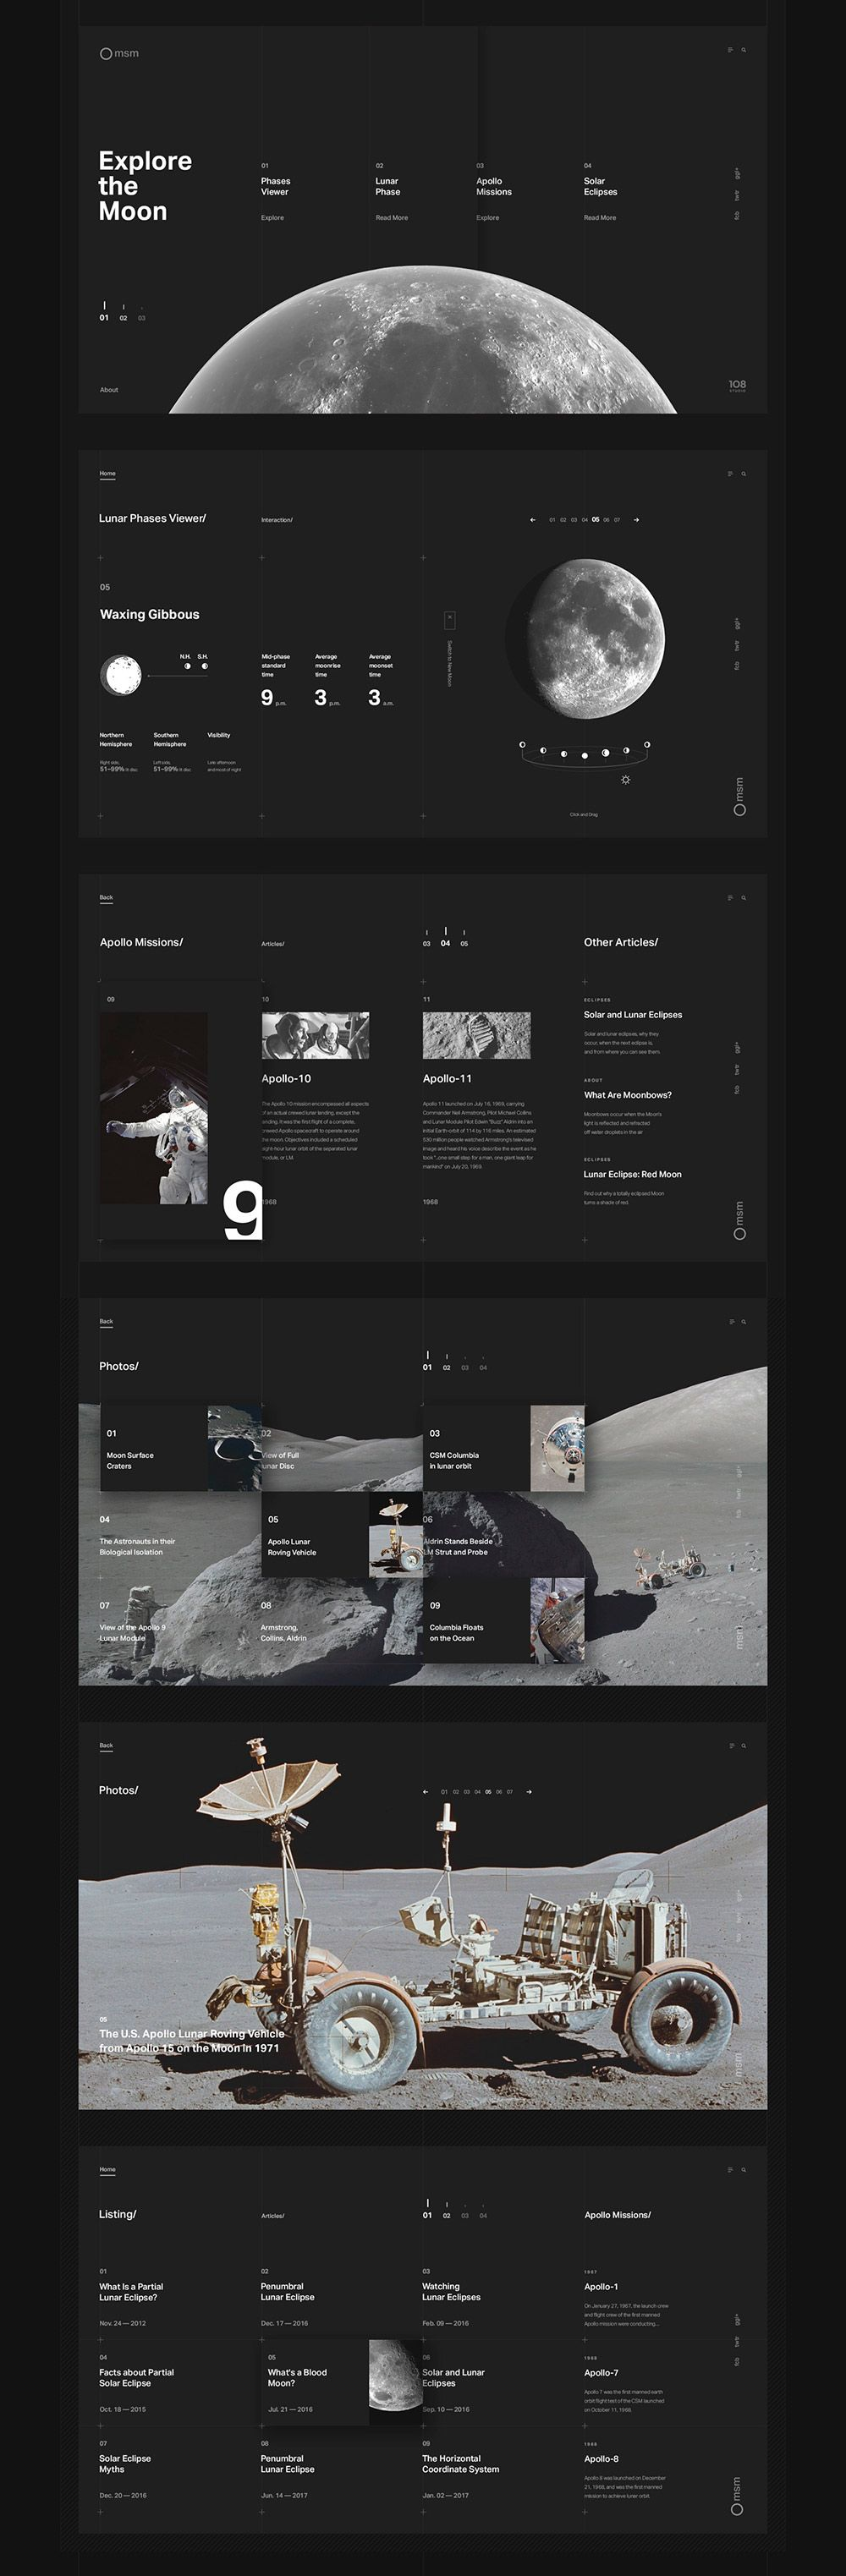 Explore the Moon Project: Web Design + Cinema 4D | HeyDesign